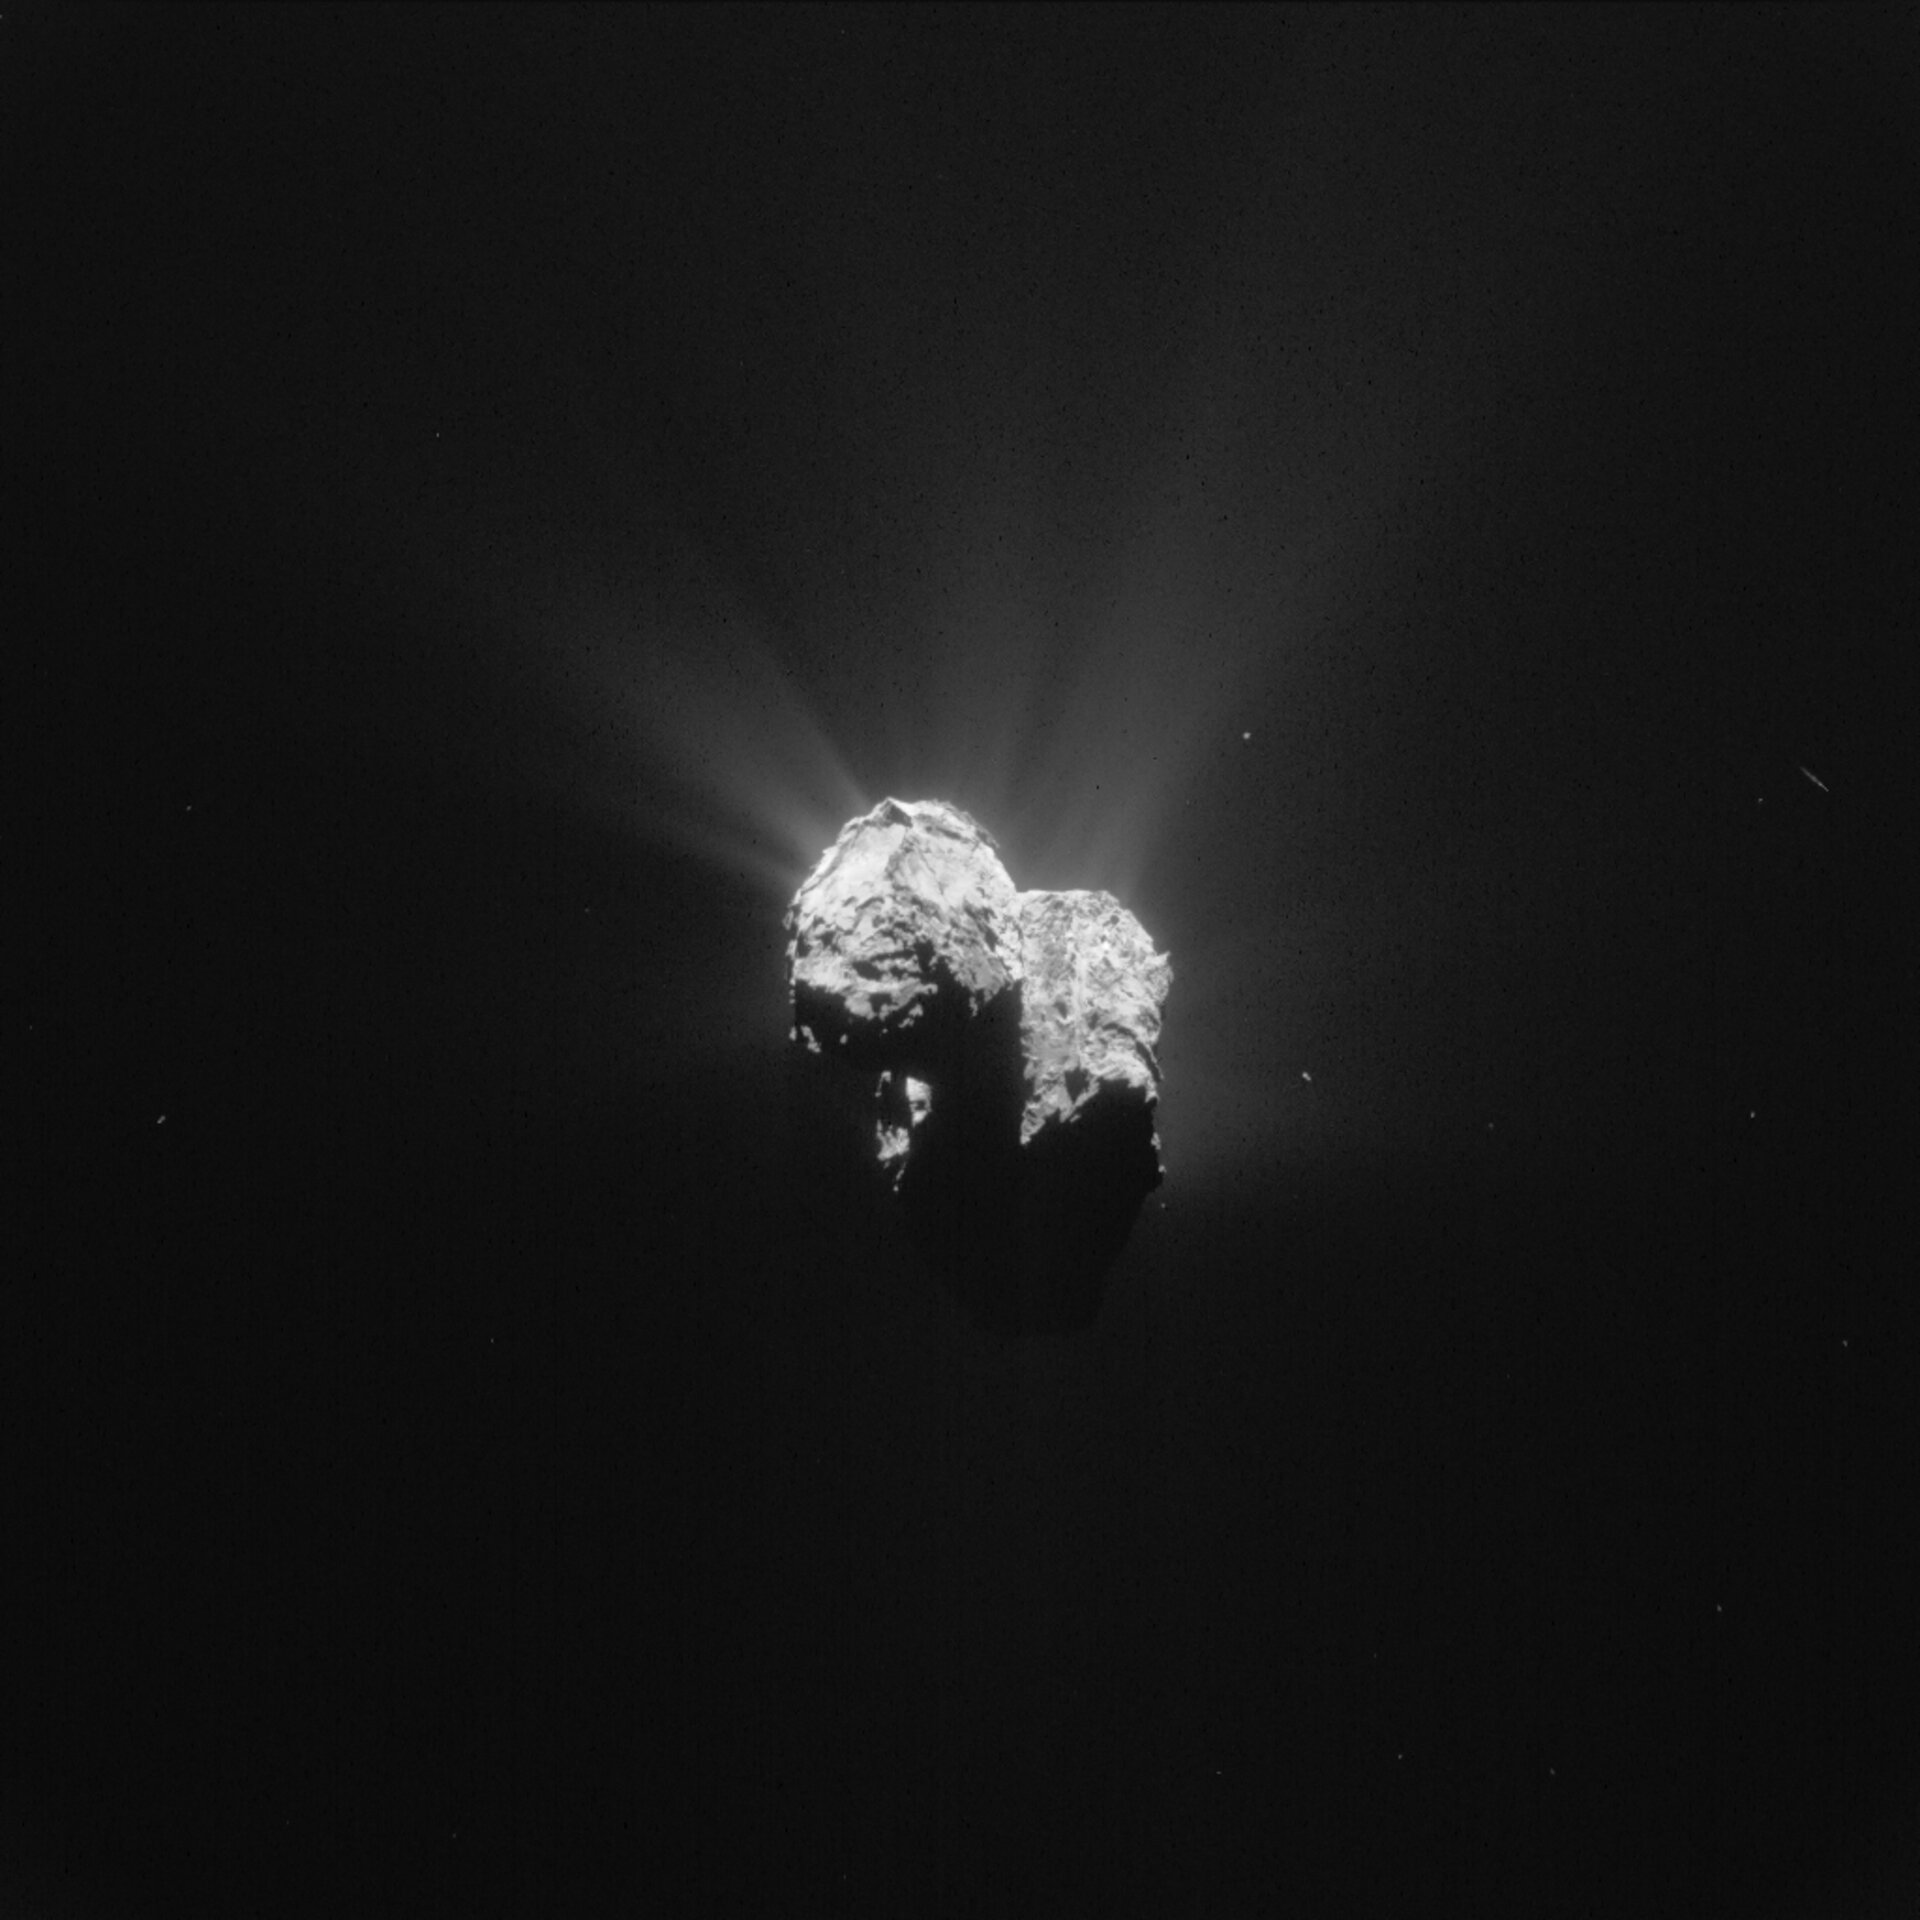 Year at a comet, June 2015